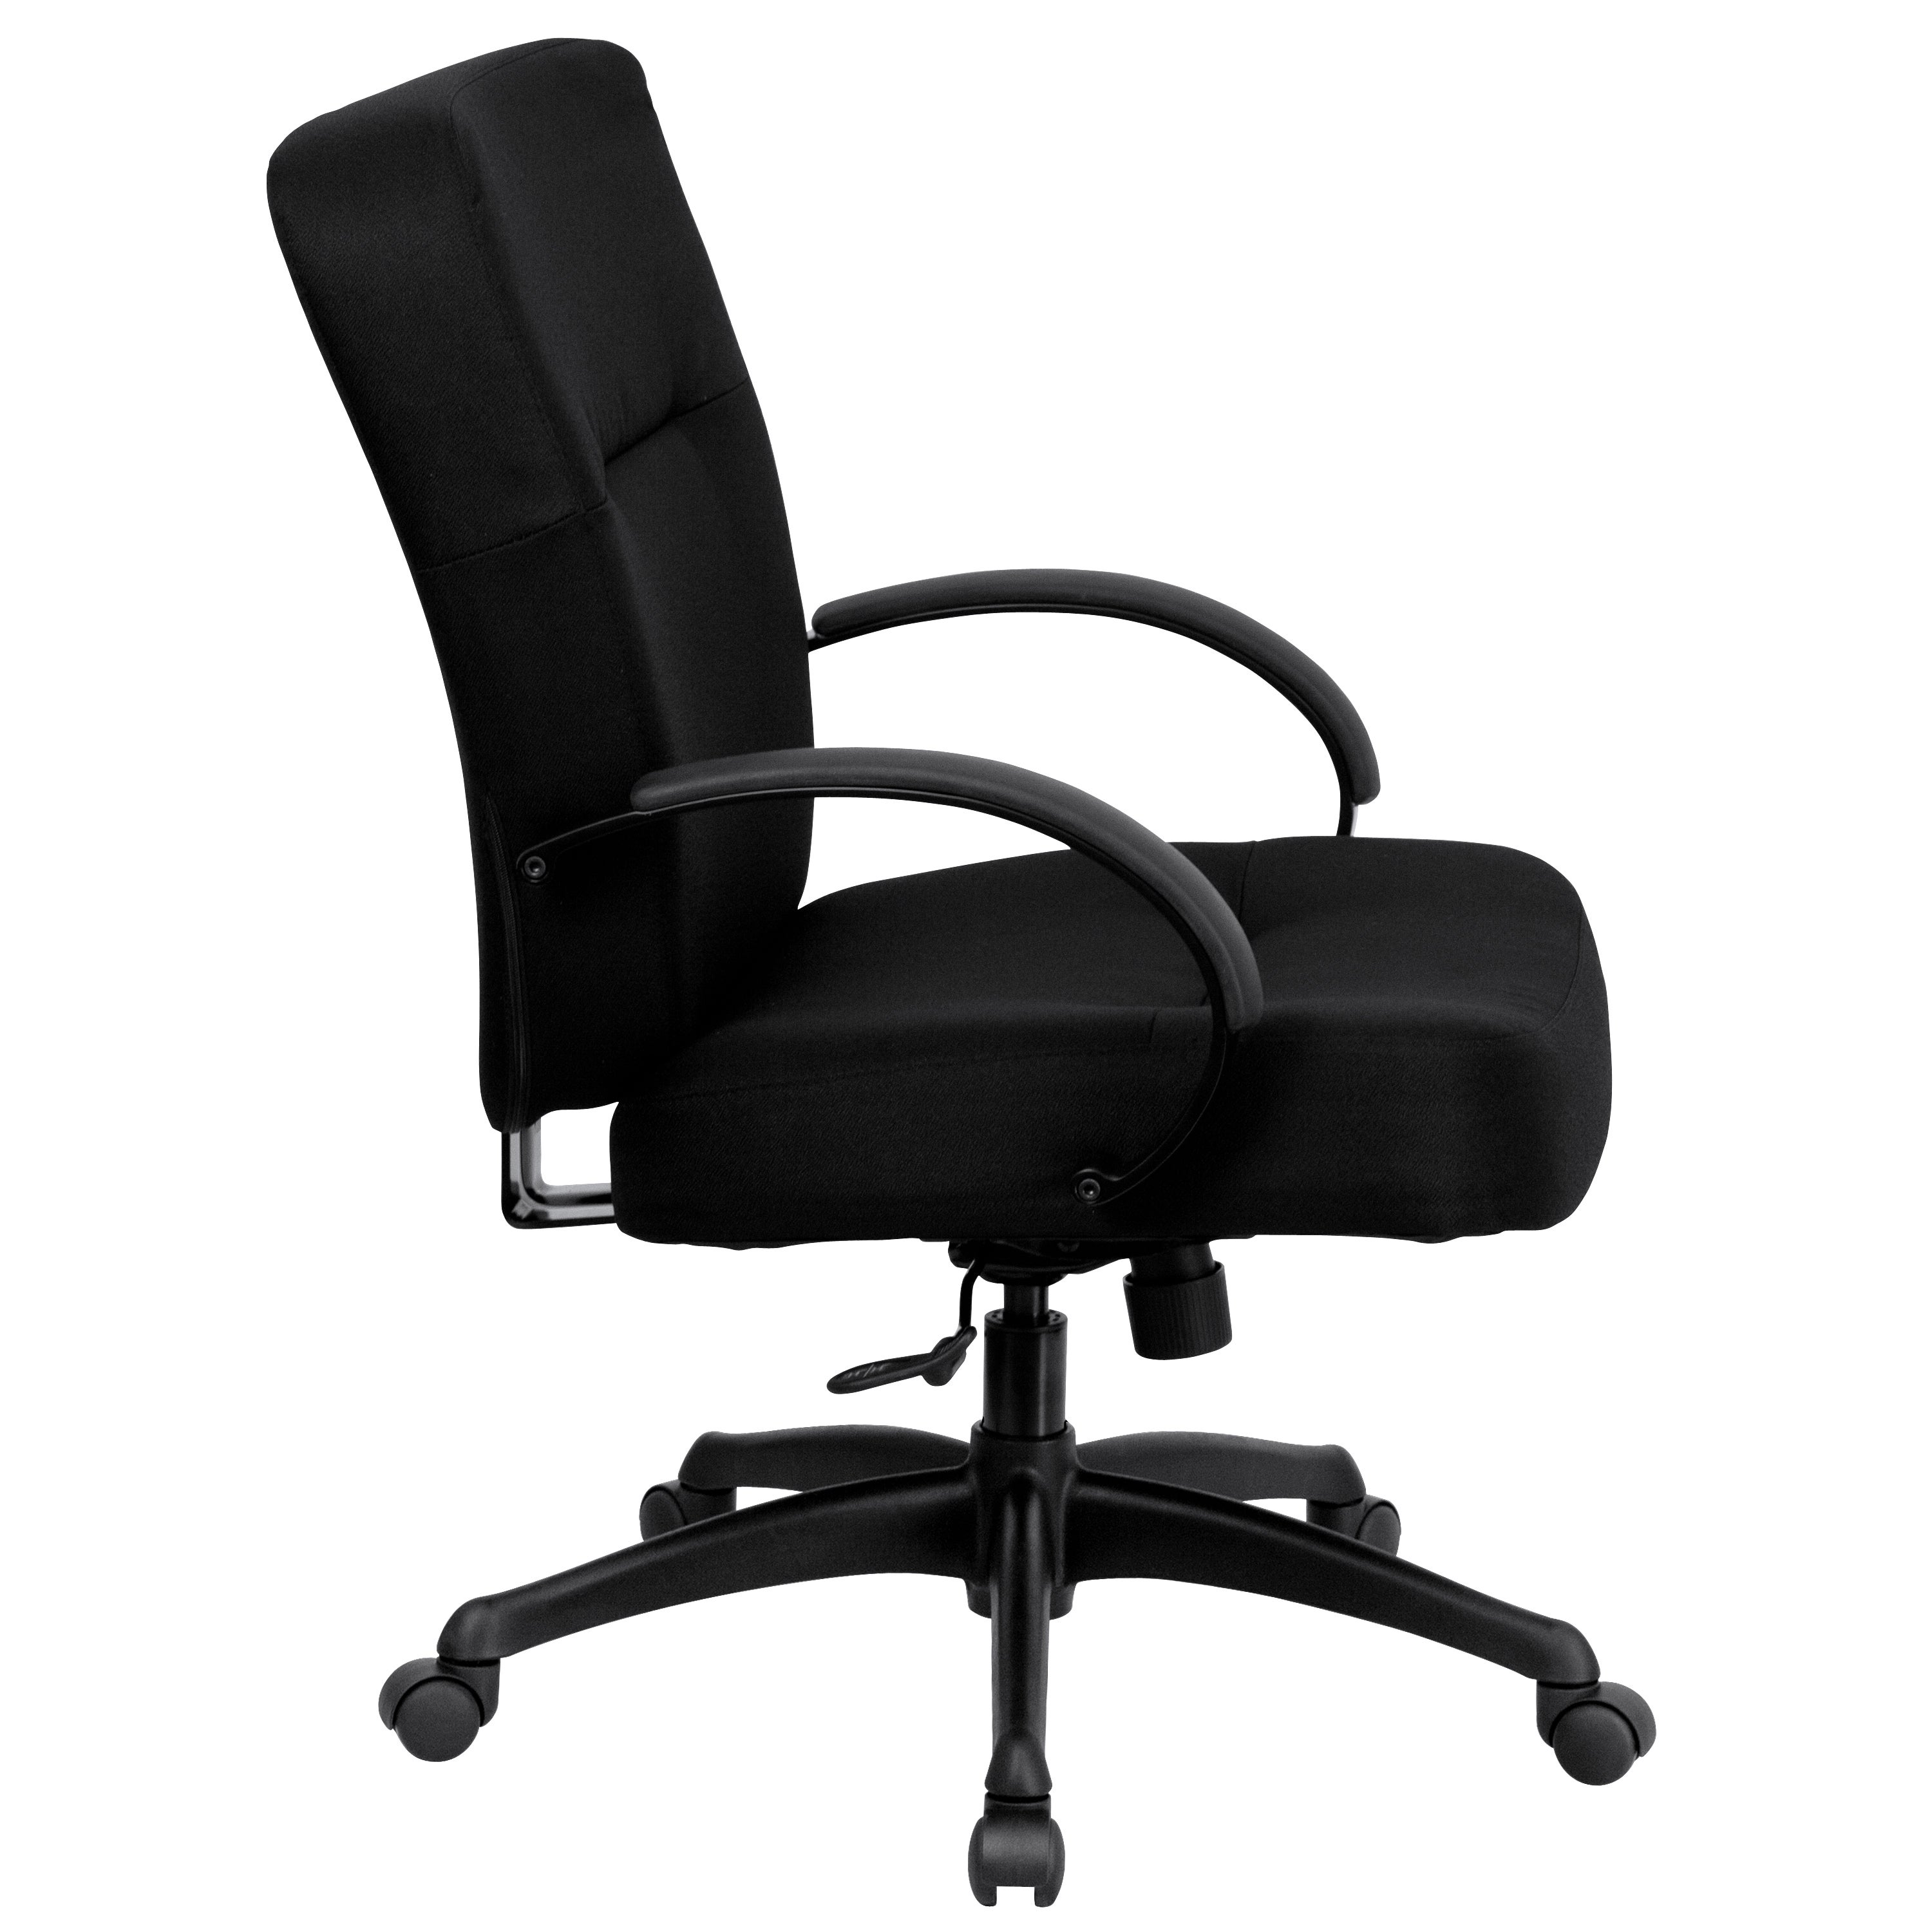 High Quality Werth Big And Tall Black Fabric Executive Swivel Office Chair With Extra  Wide Seat And Height Adjustable Arms   Free Shipping Today   Overstock    18562188